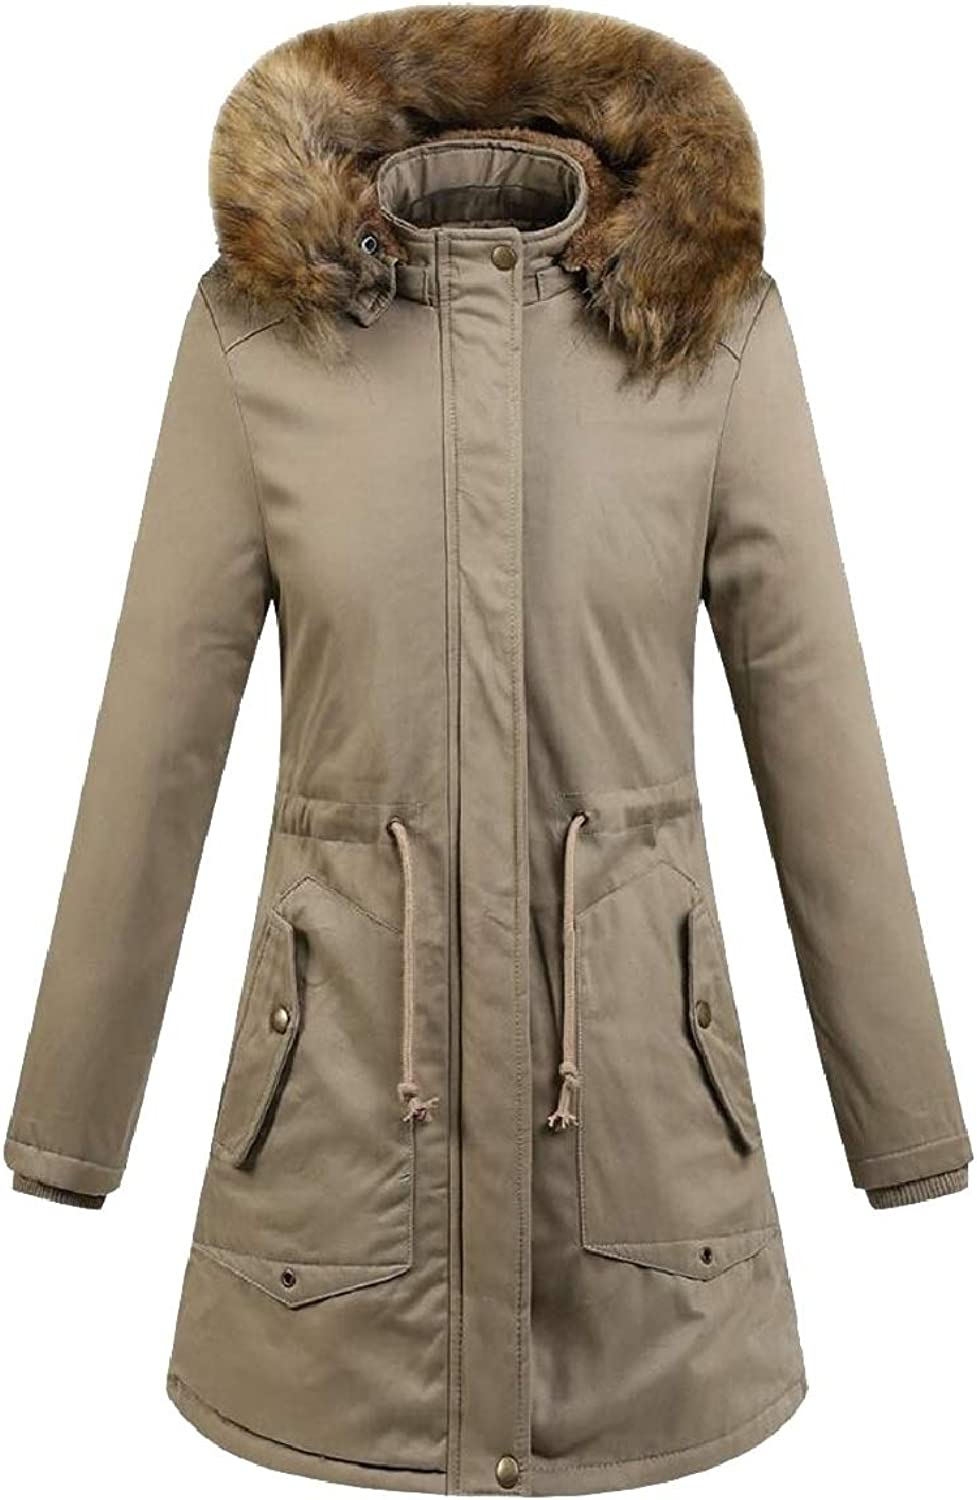 Xswsy XGCA Womens Thick Padded Faux Fur Lined FauxFur Collar Down Jacket Coat